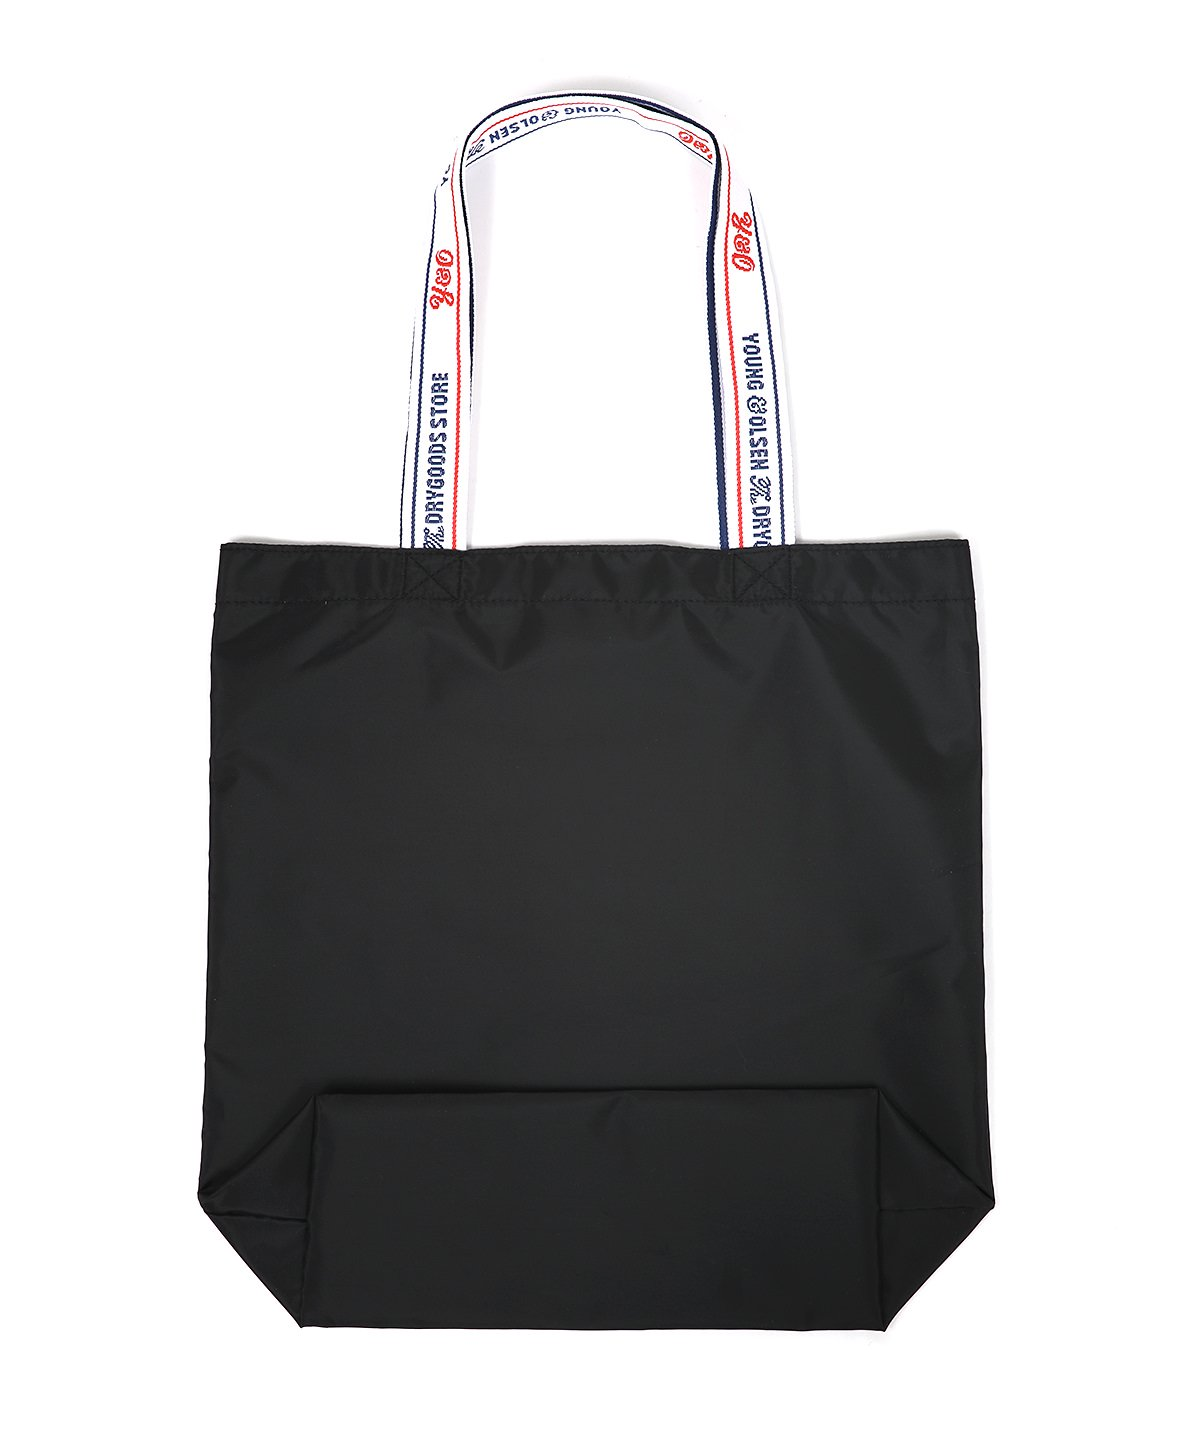 Y&O SHOPPING TOTE MB